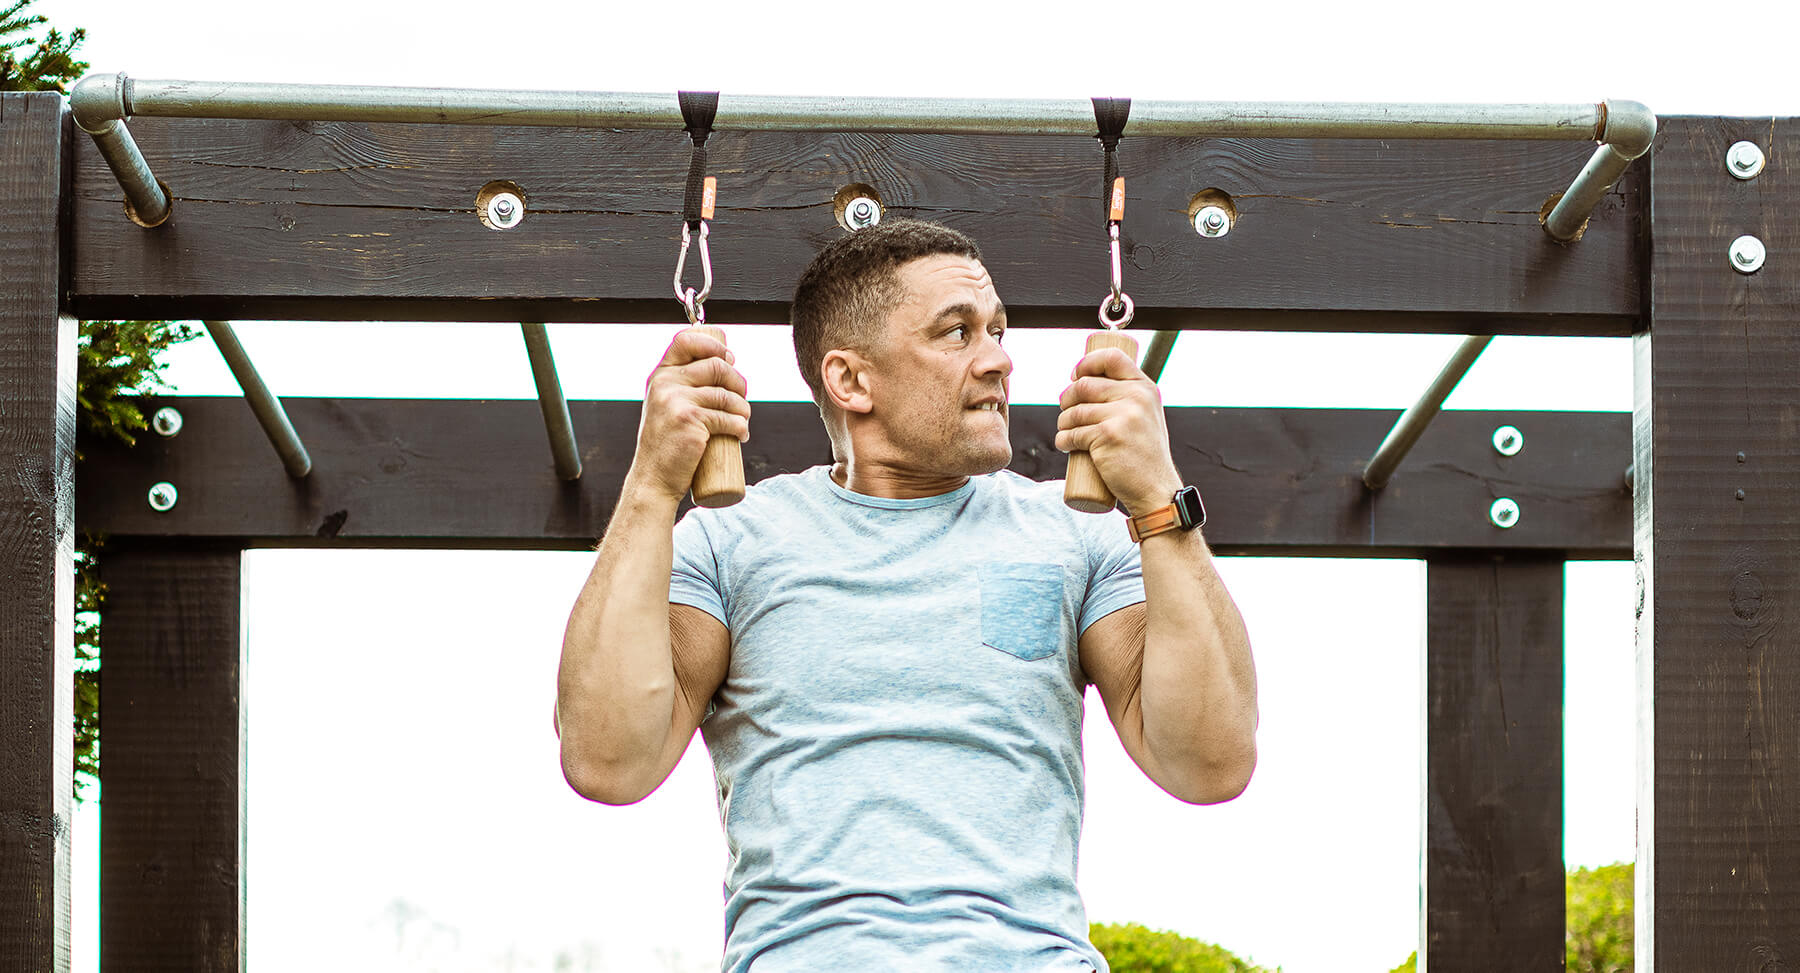 how to build arm strength, arm strength workout, arm strength exercises